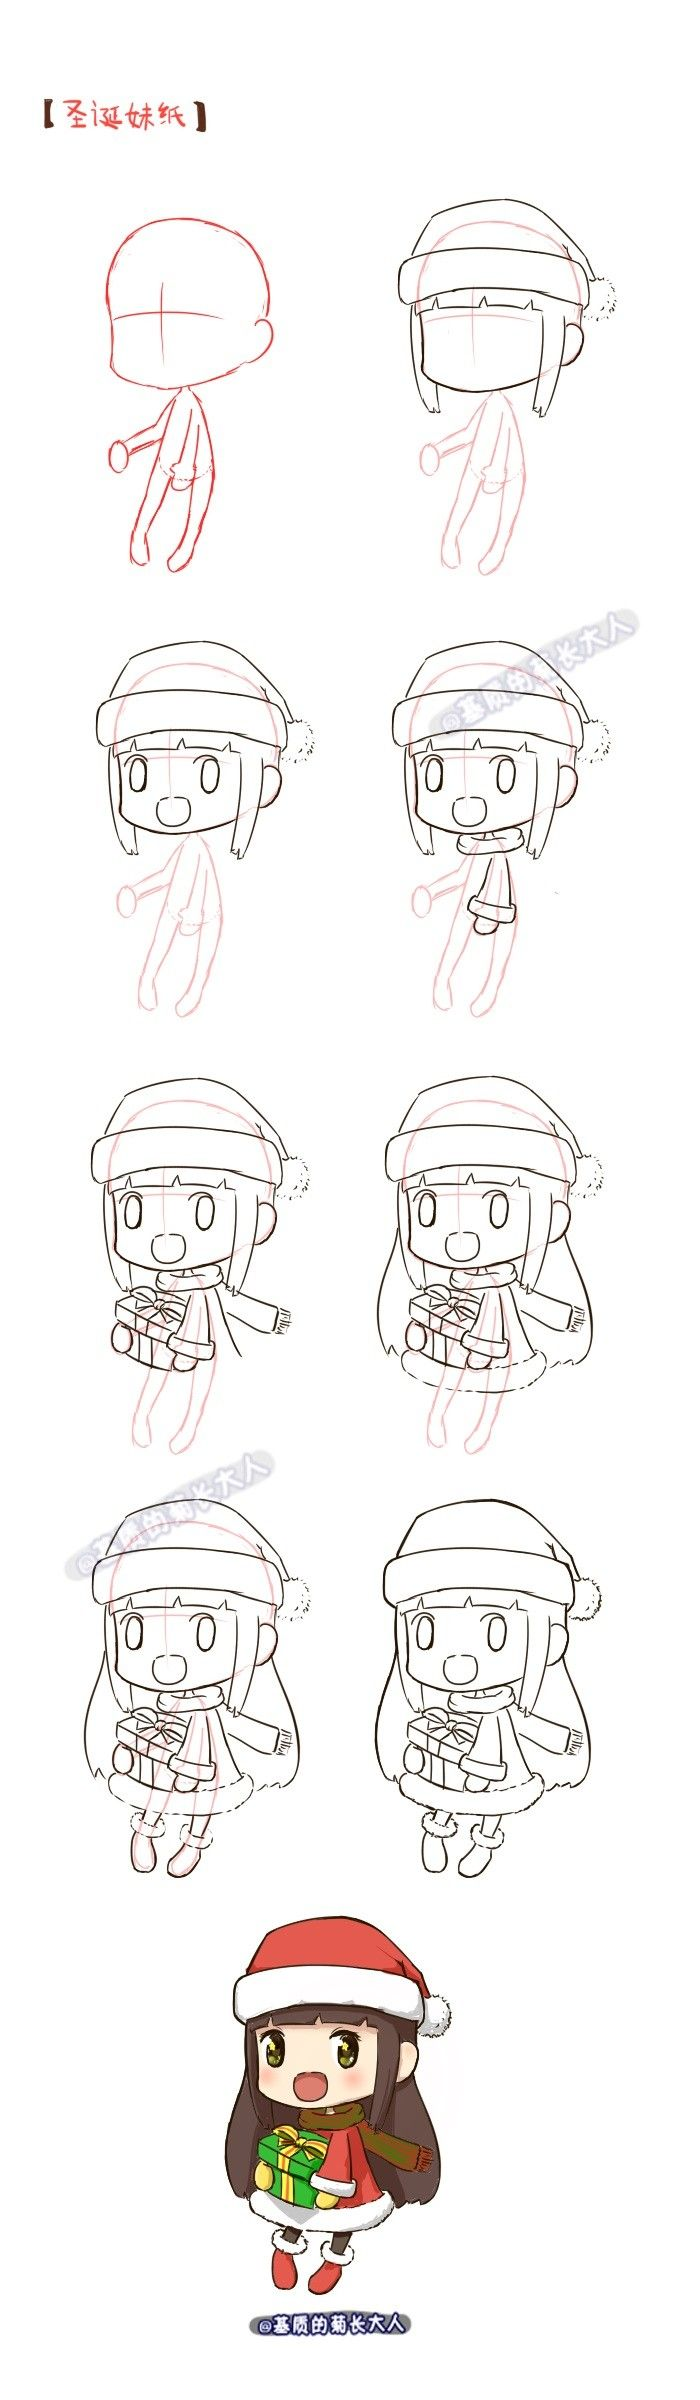 Pro Merry Christmas to the human body structure with a Q version Meng Meng da draw a Christmas girl!  @ Matrix Ju who grew up